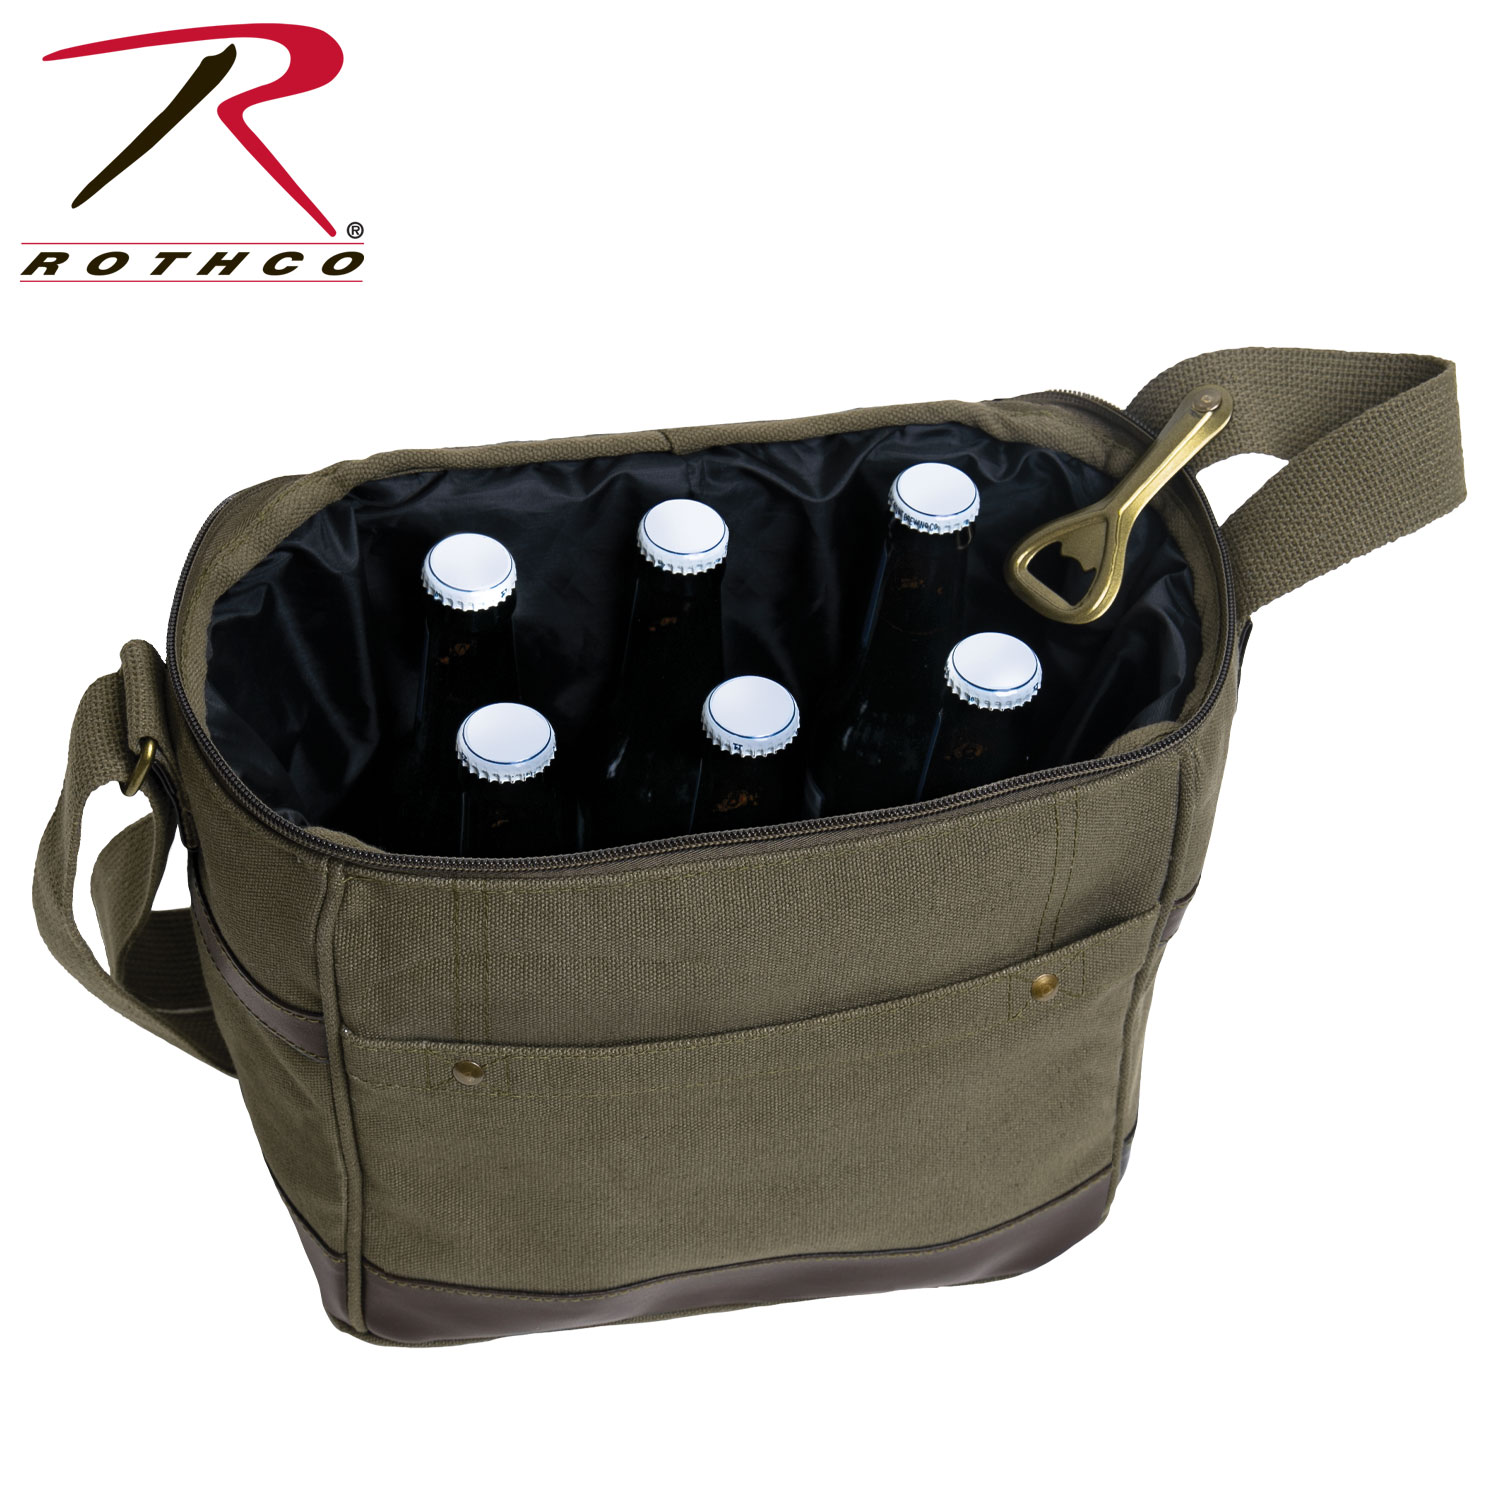 41426d00d Rothco Canvas Insulated Cooler Bag